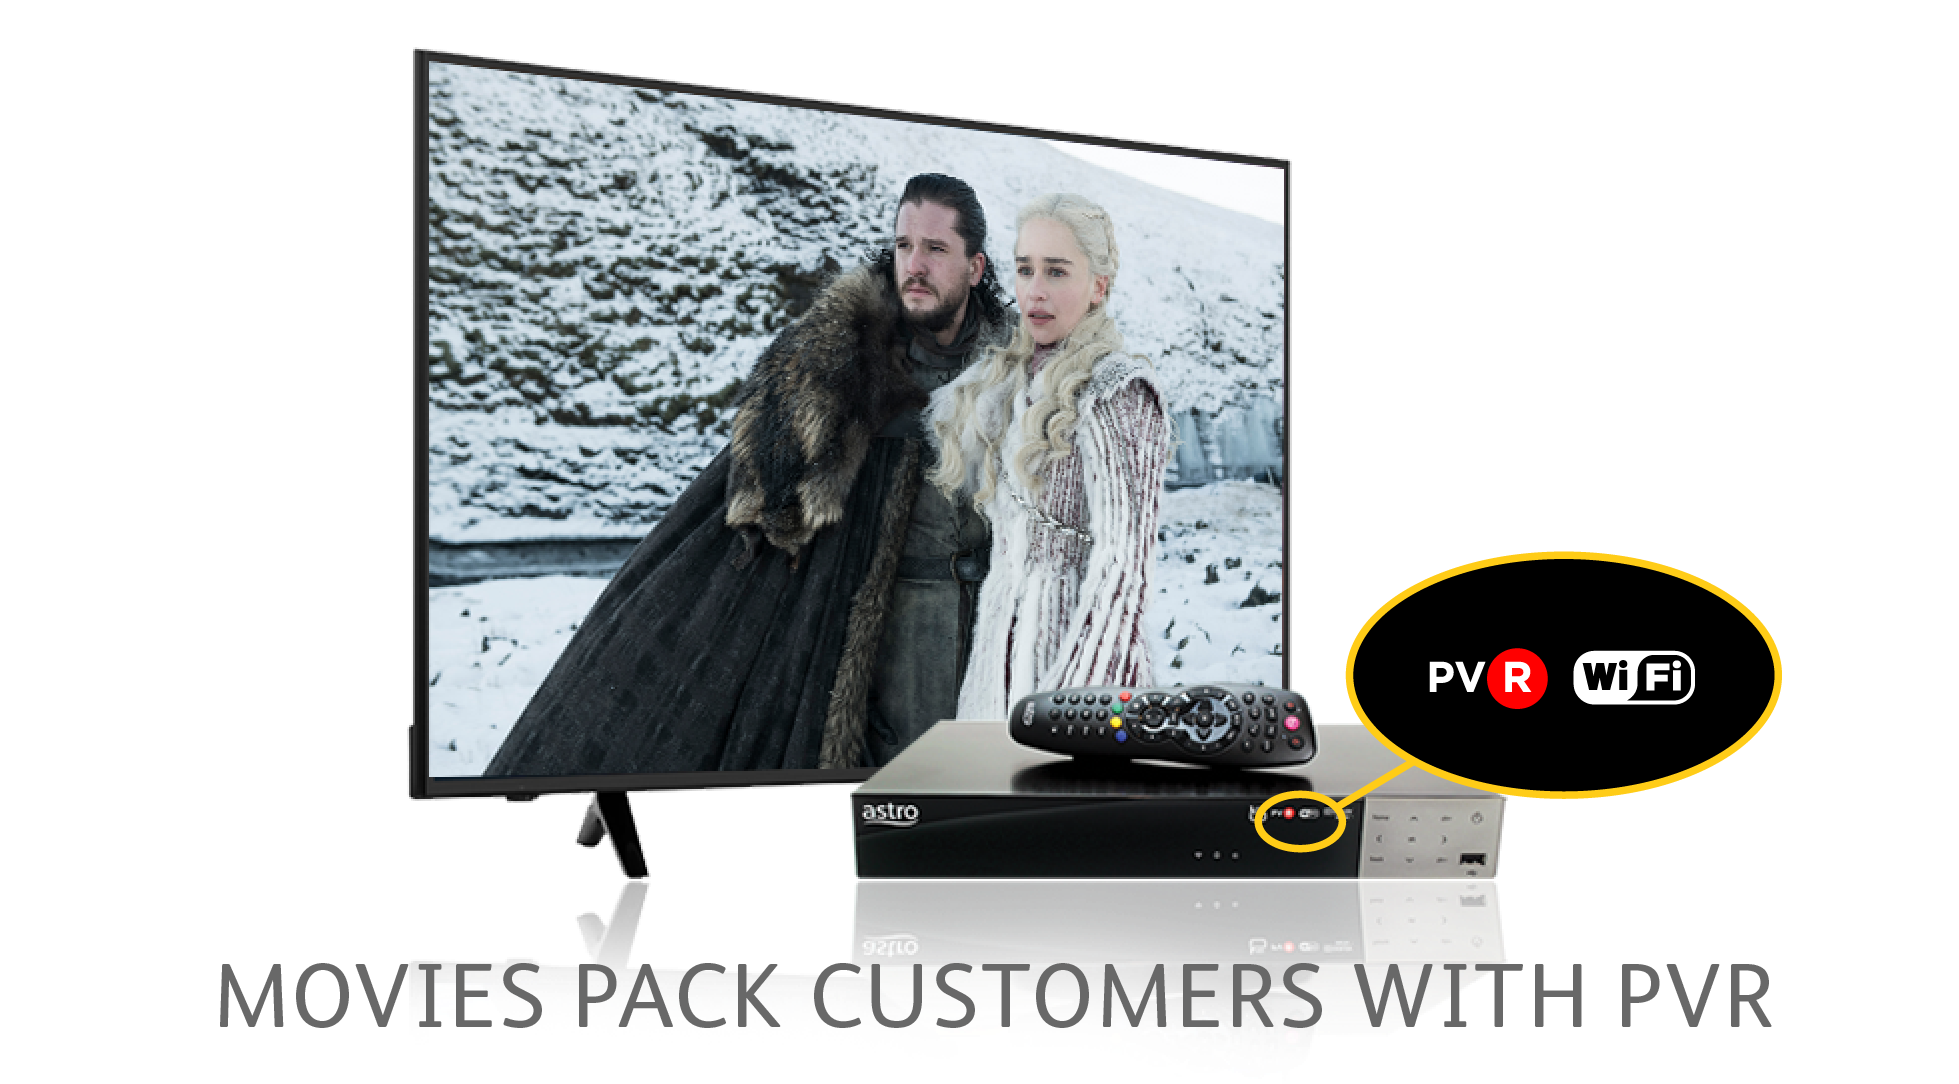 How Movies Pack Customers With PVR Can Watch Game of Thrones